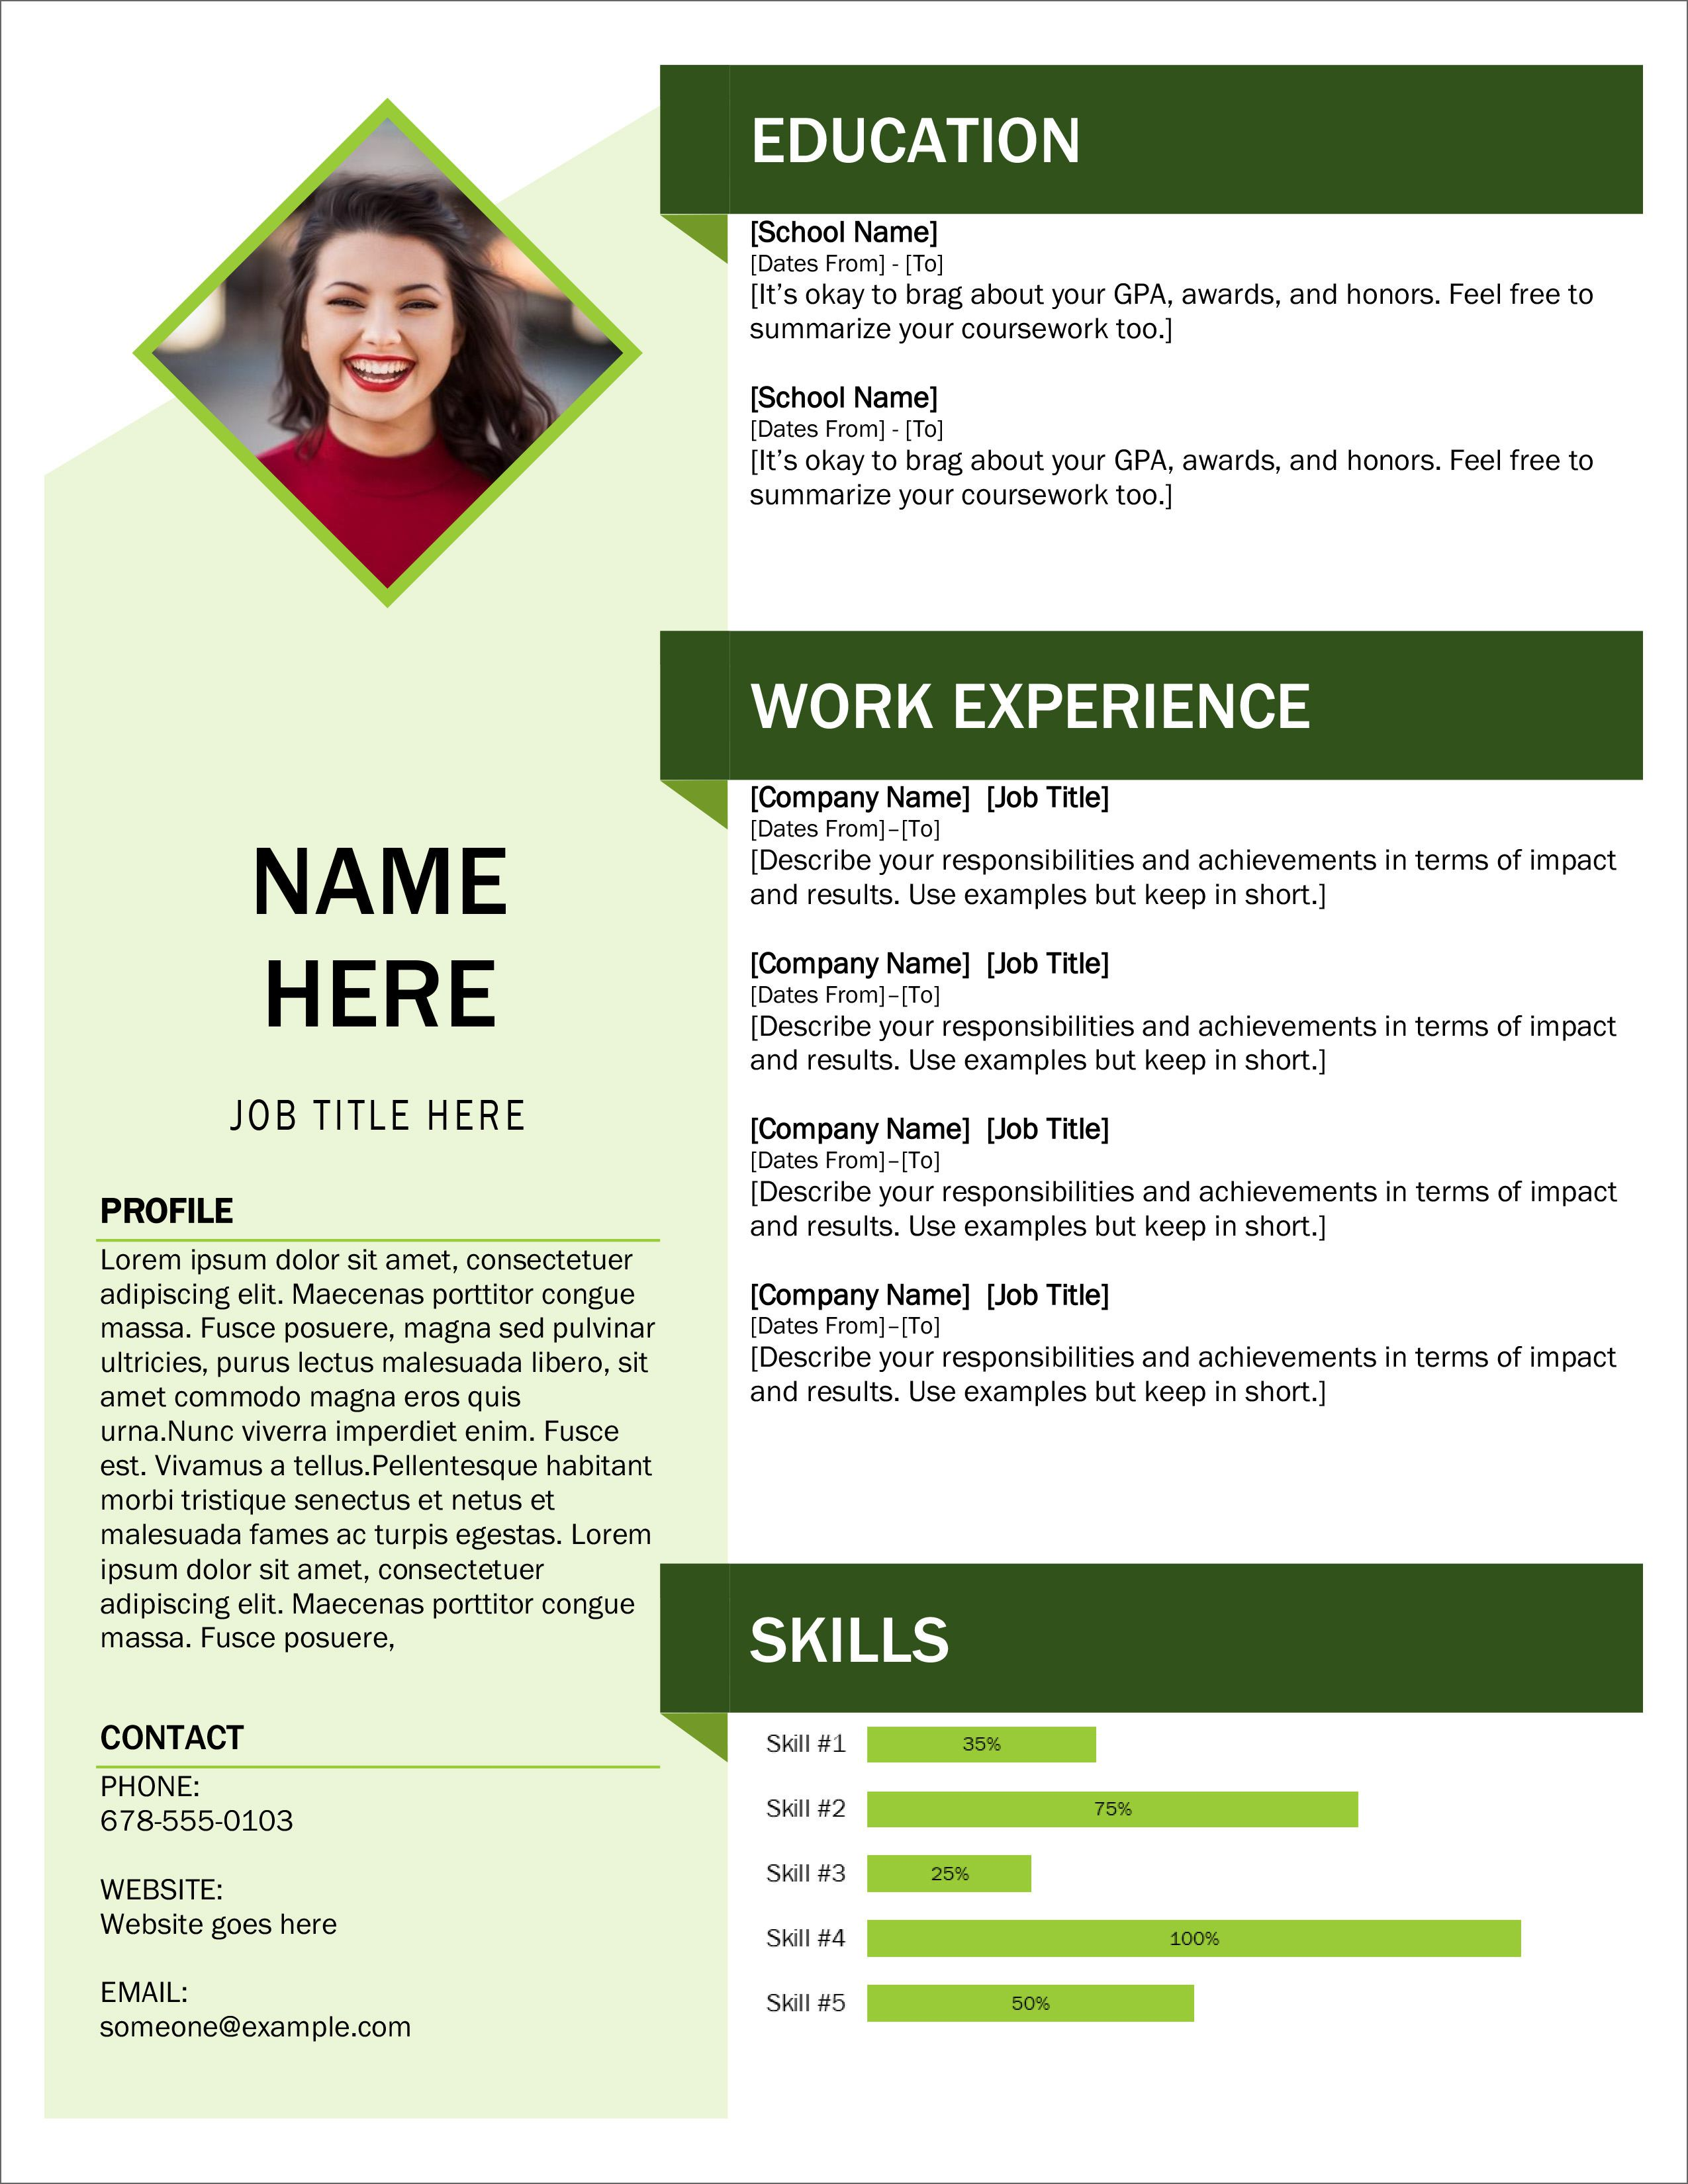 005 Exceptional Download Resume Template Word 2007 High Def Full